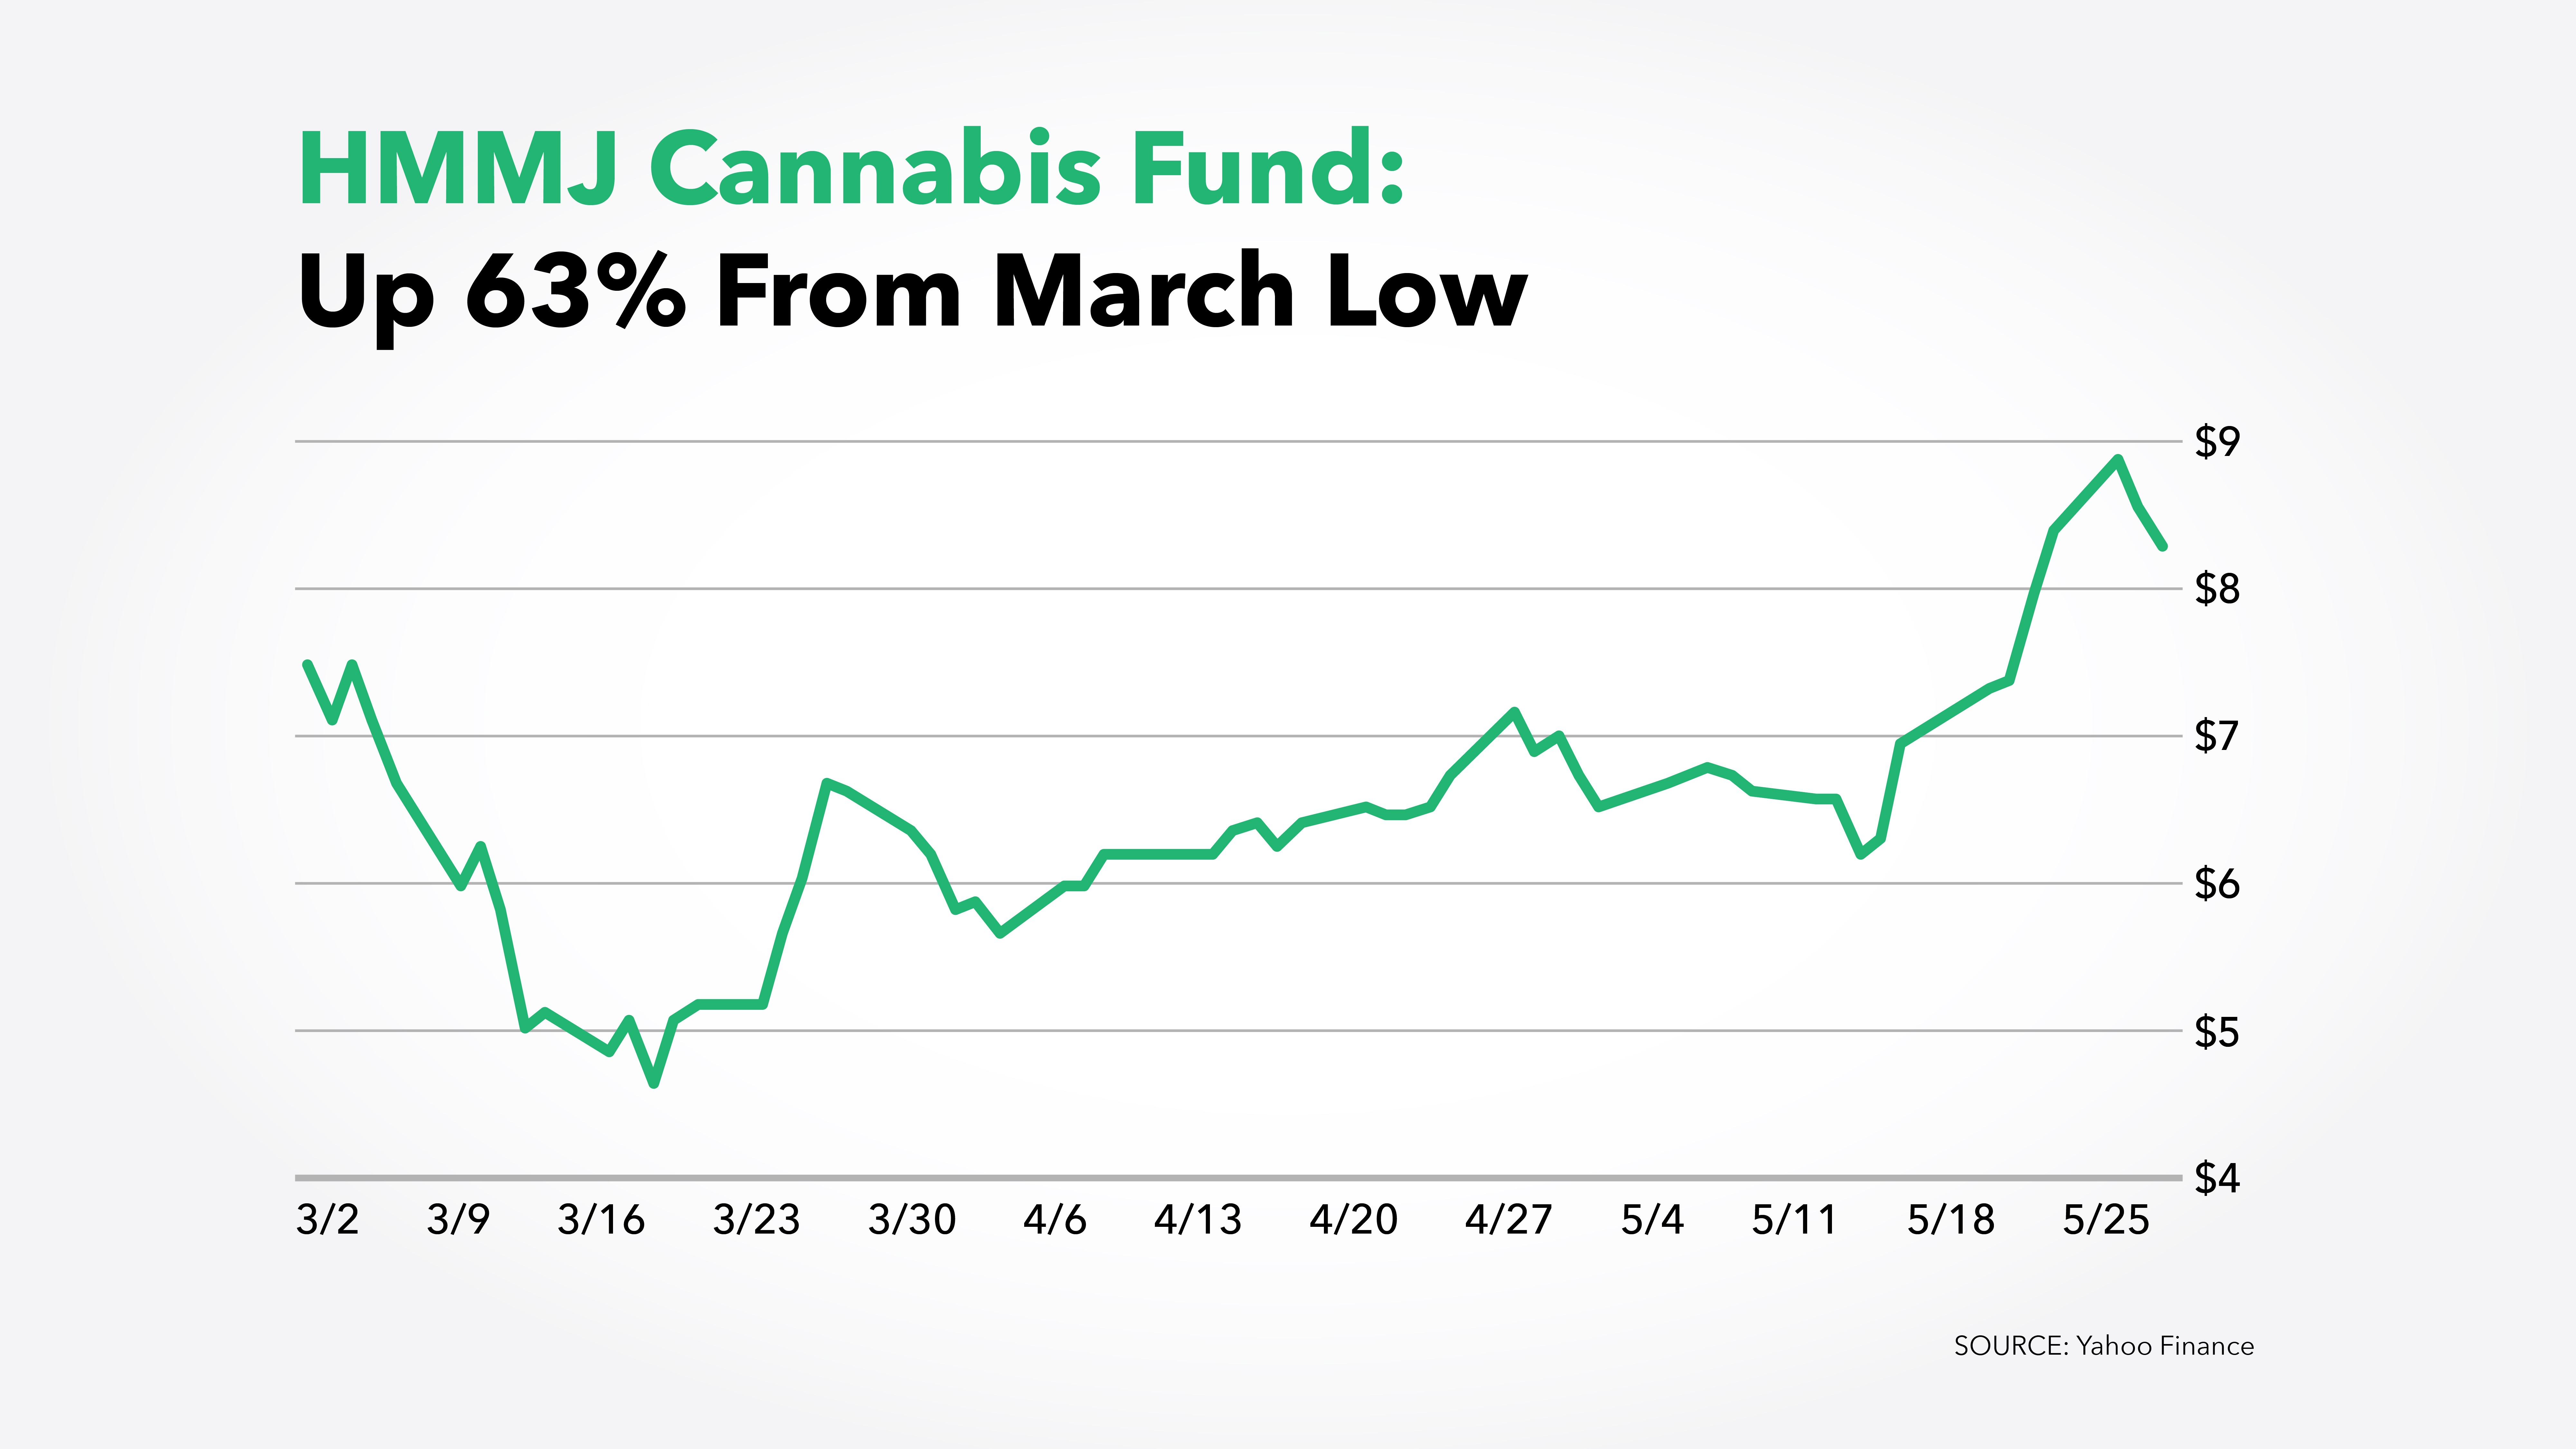 Chart of HMMJ Cannabis Fund showing the stock price is up 63% from its March low price